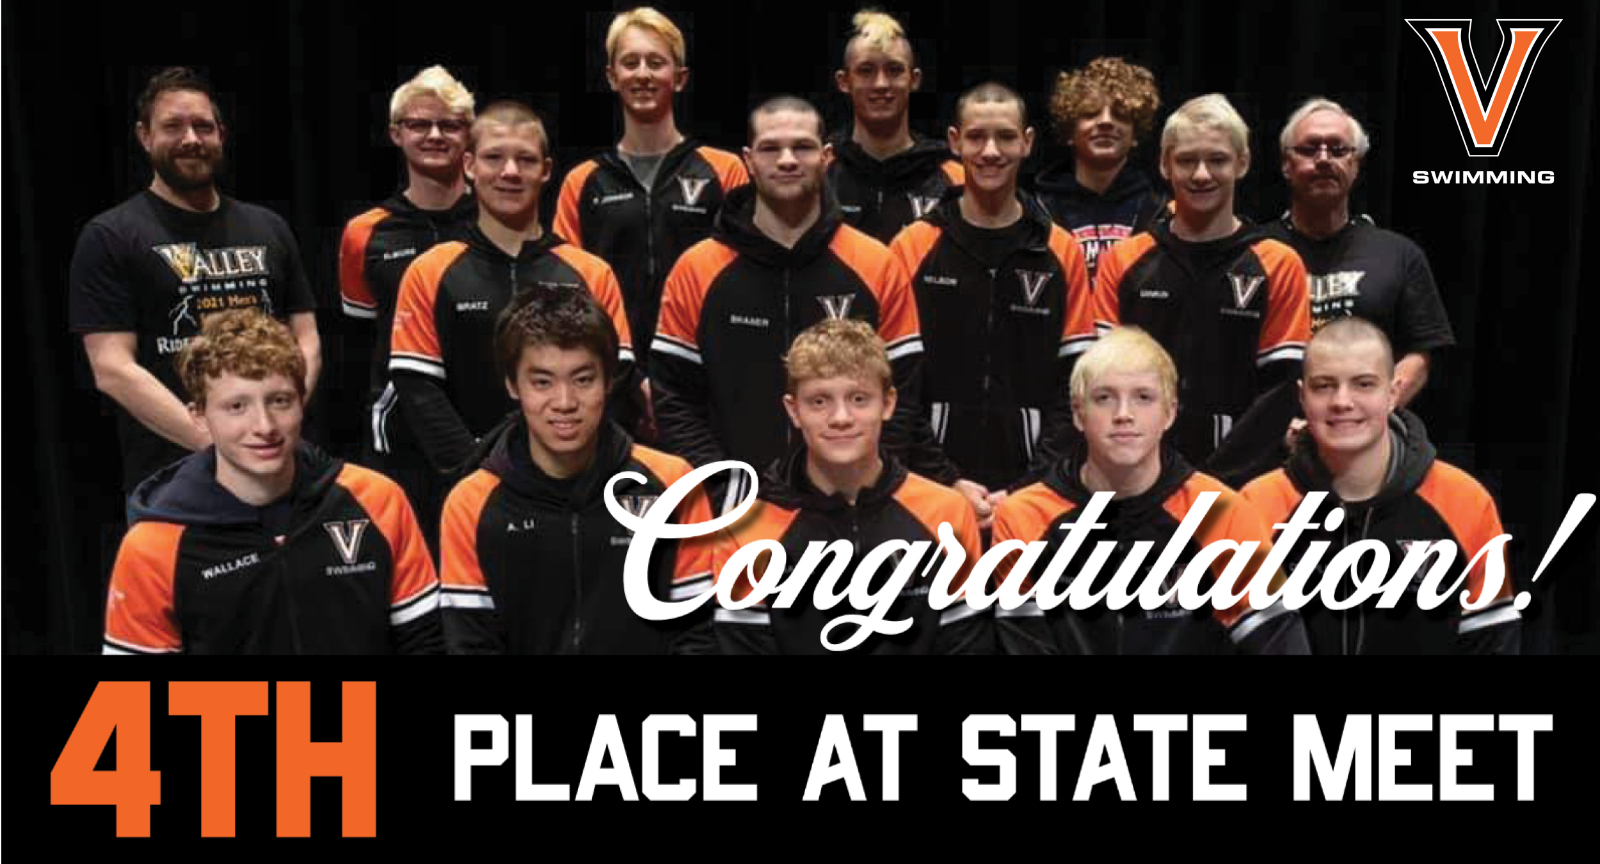 valley boys swimming state meet results 2021